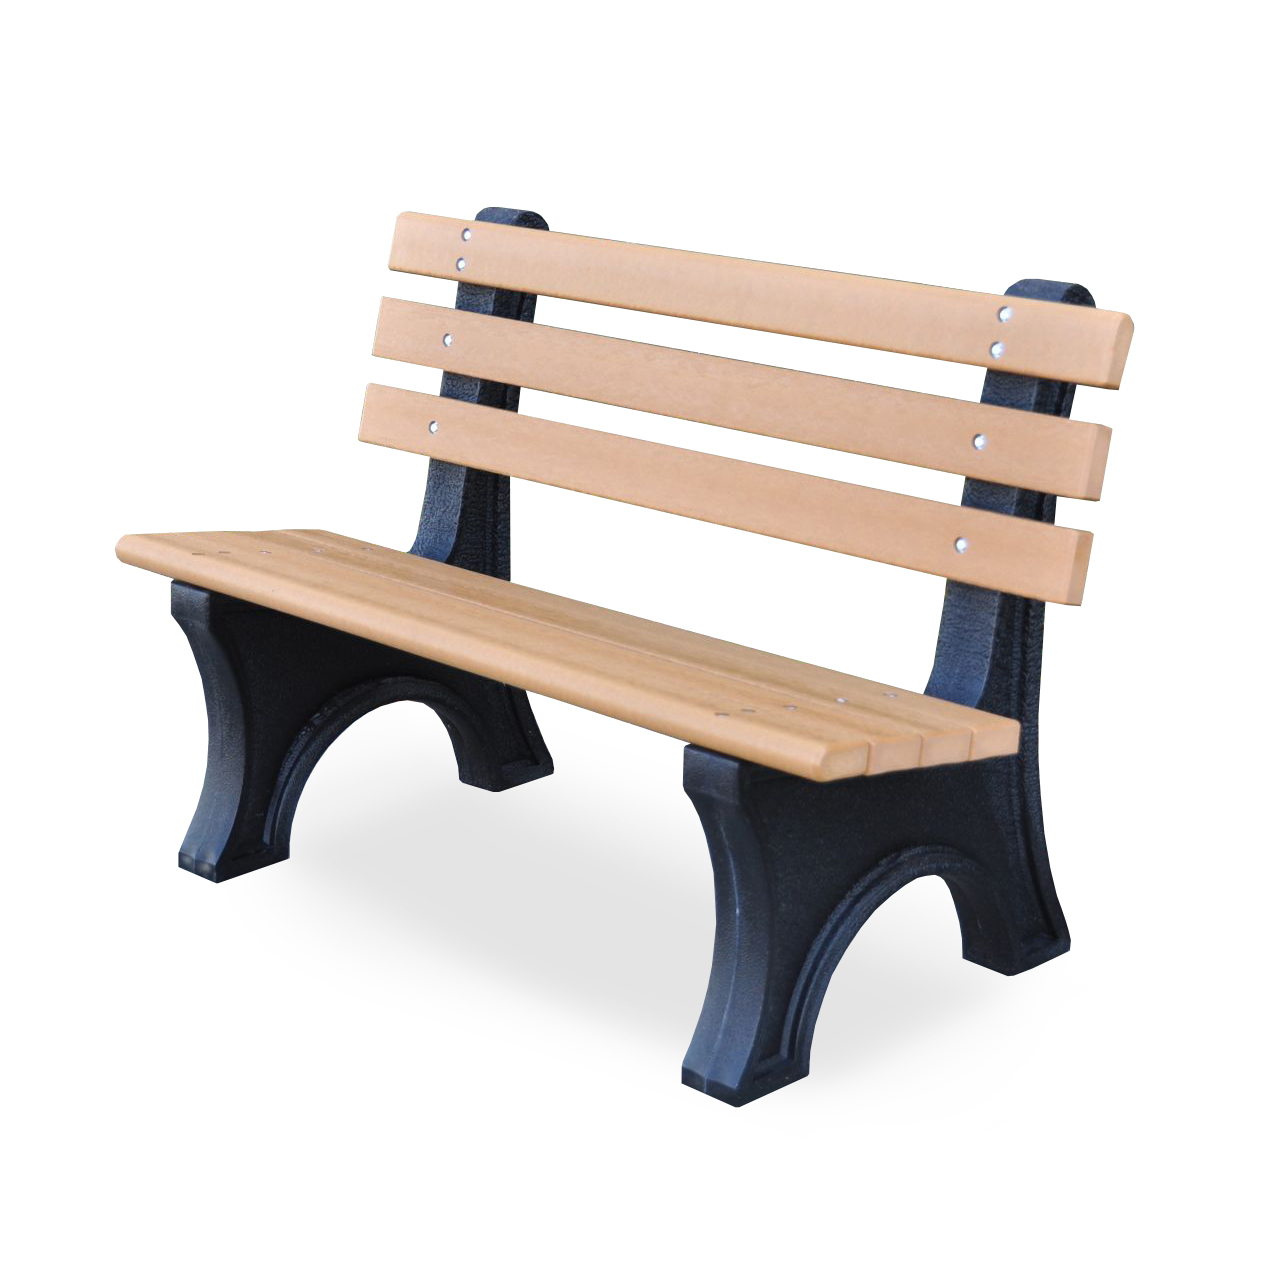 Recycled Plastic Comfort Park Avenue Bench By Jayhawk